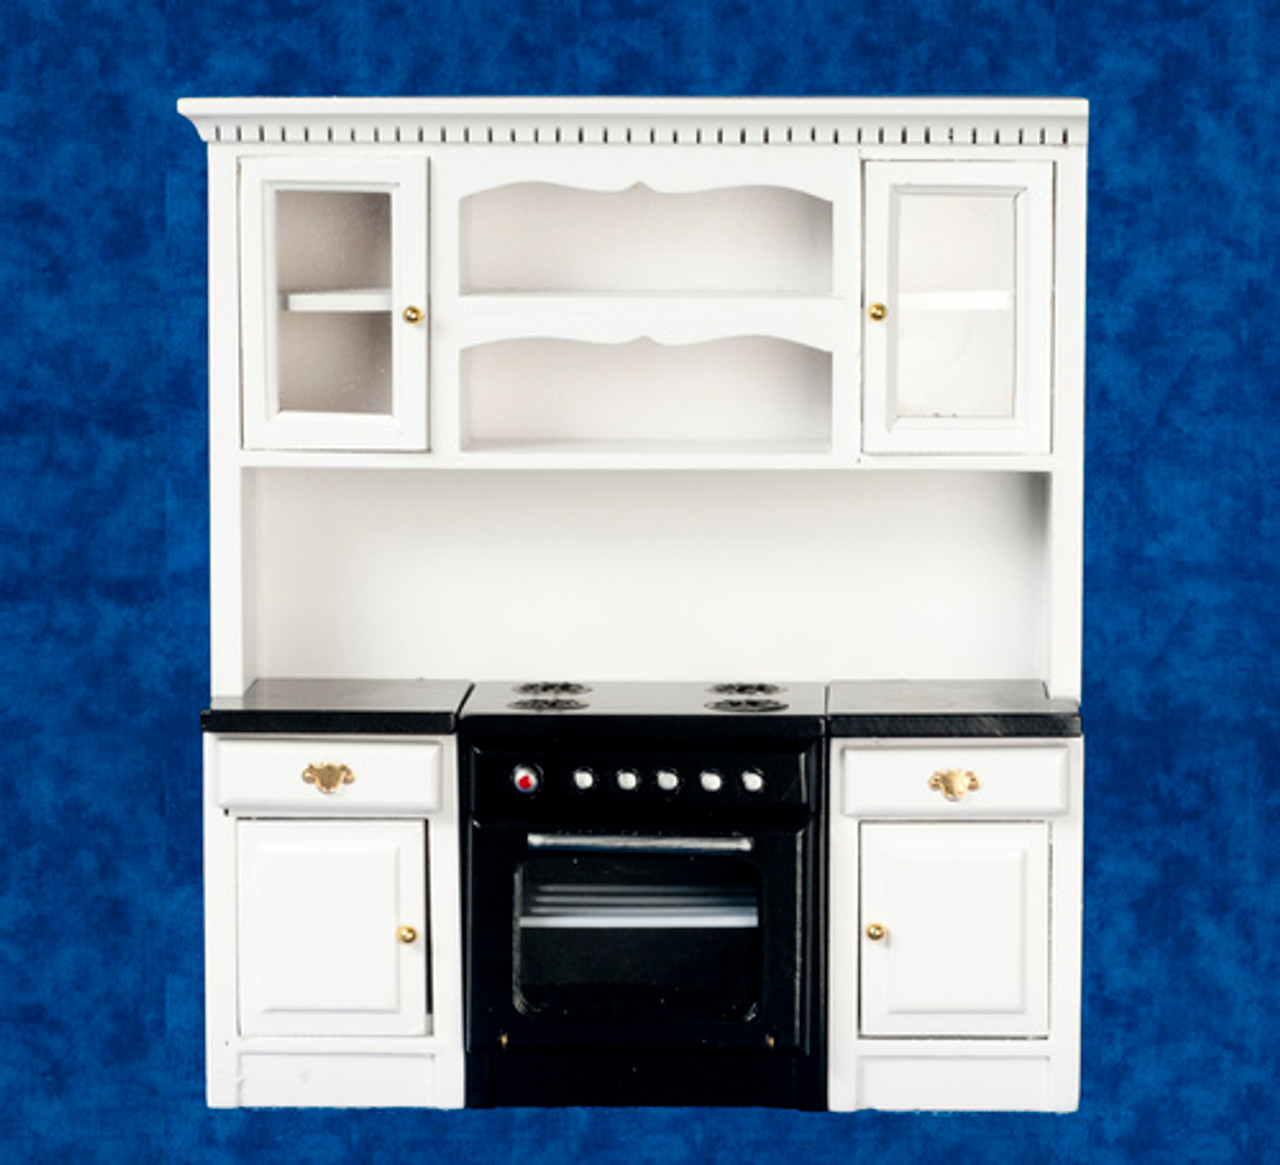 Kitchen Stove in Counter with Cabinet - White